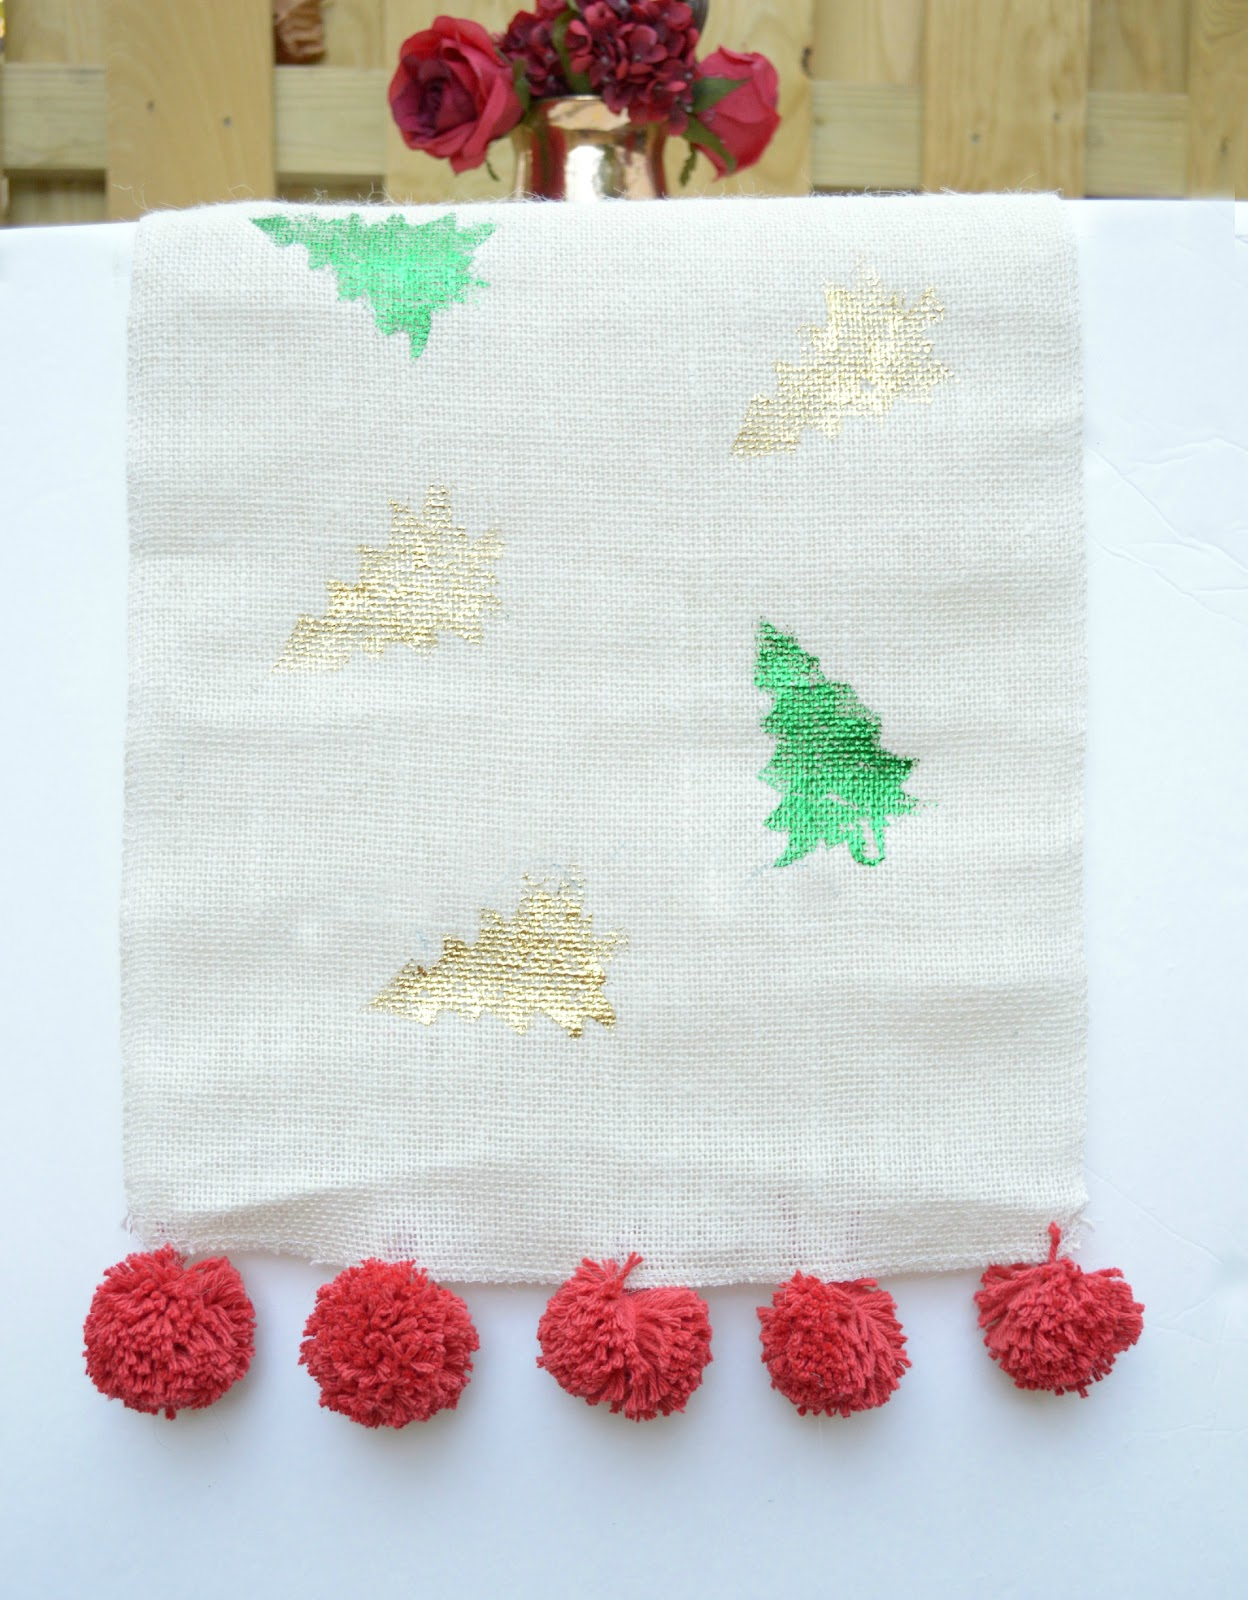 Festive Table Runner with DecoFoil